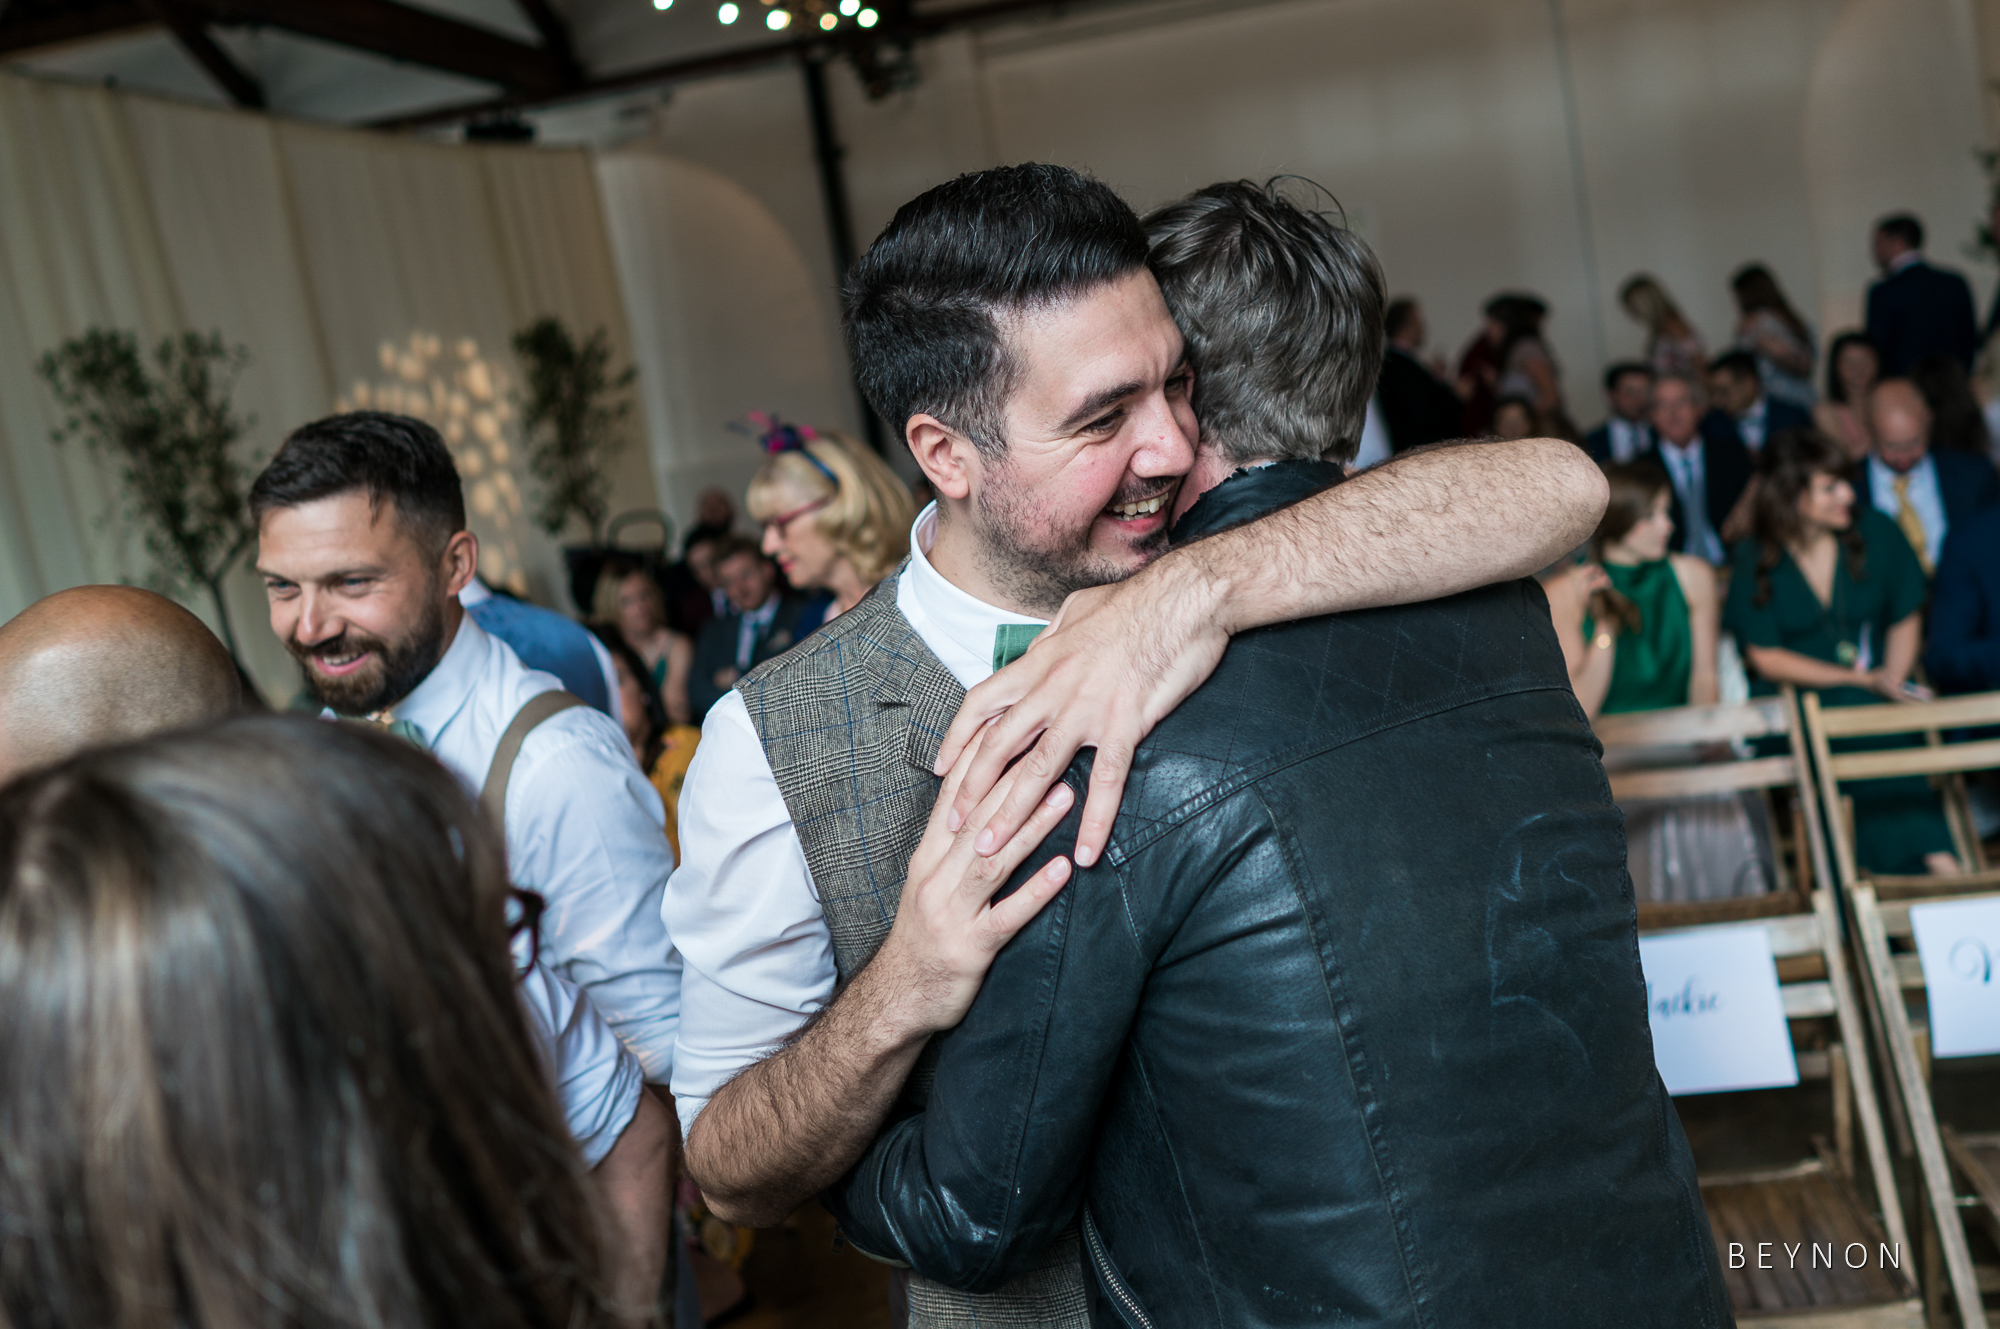 The Groom hugs a guest